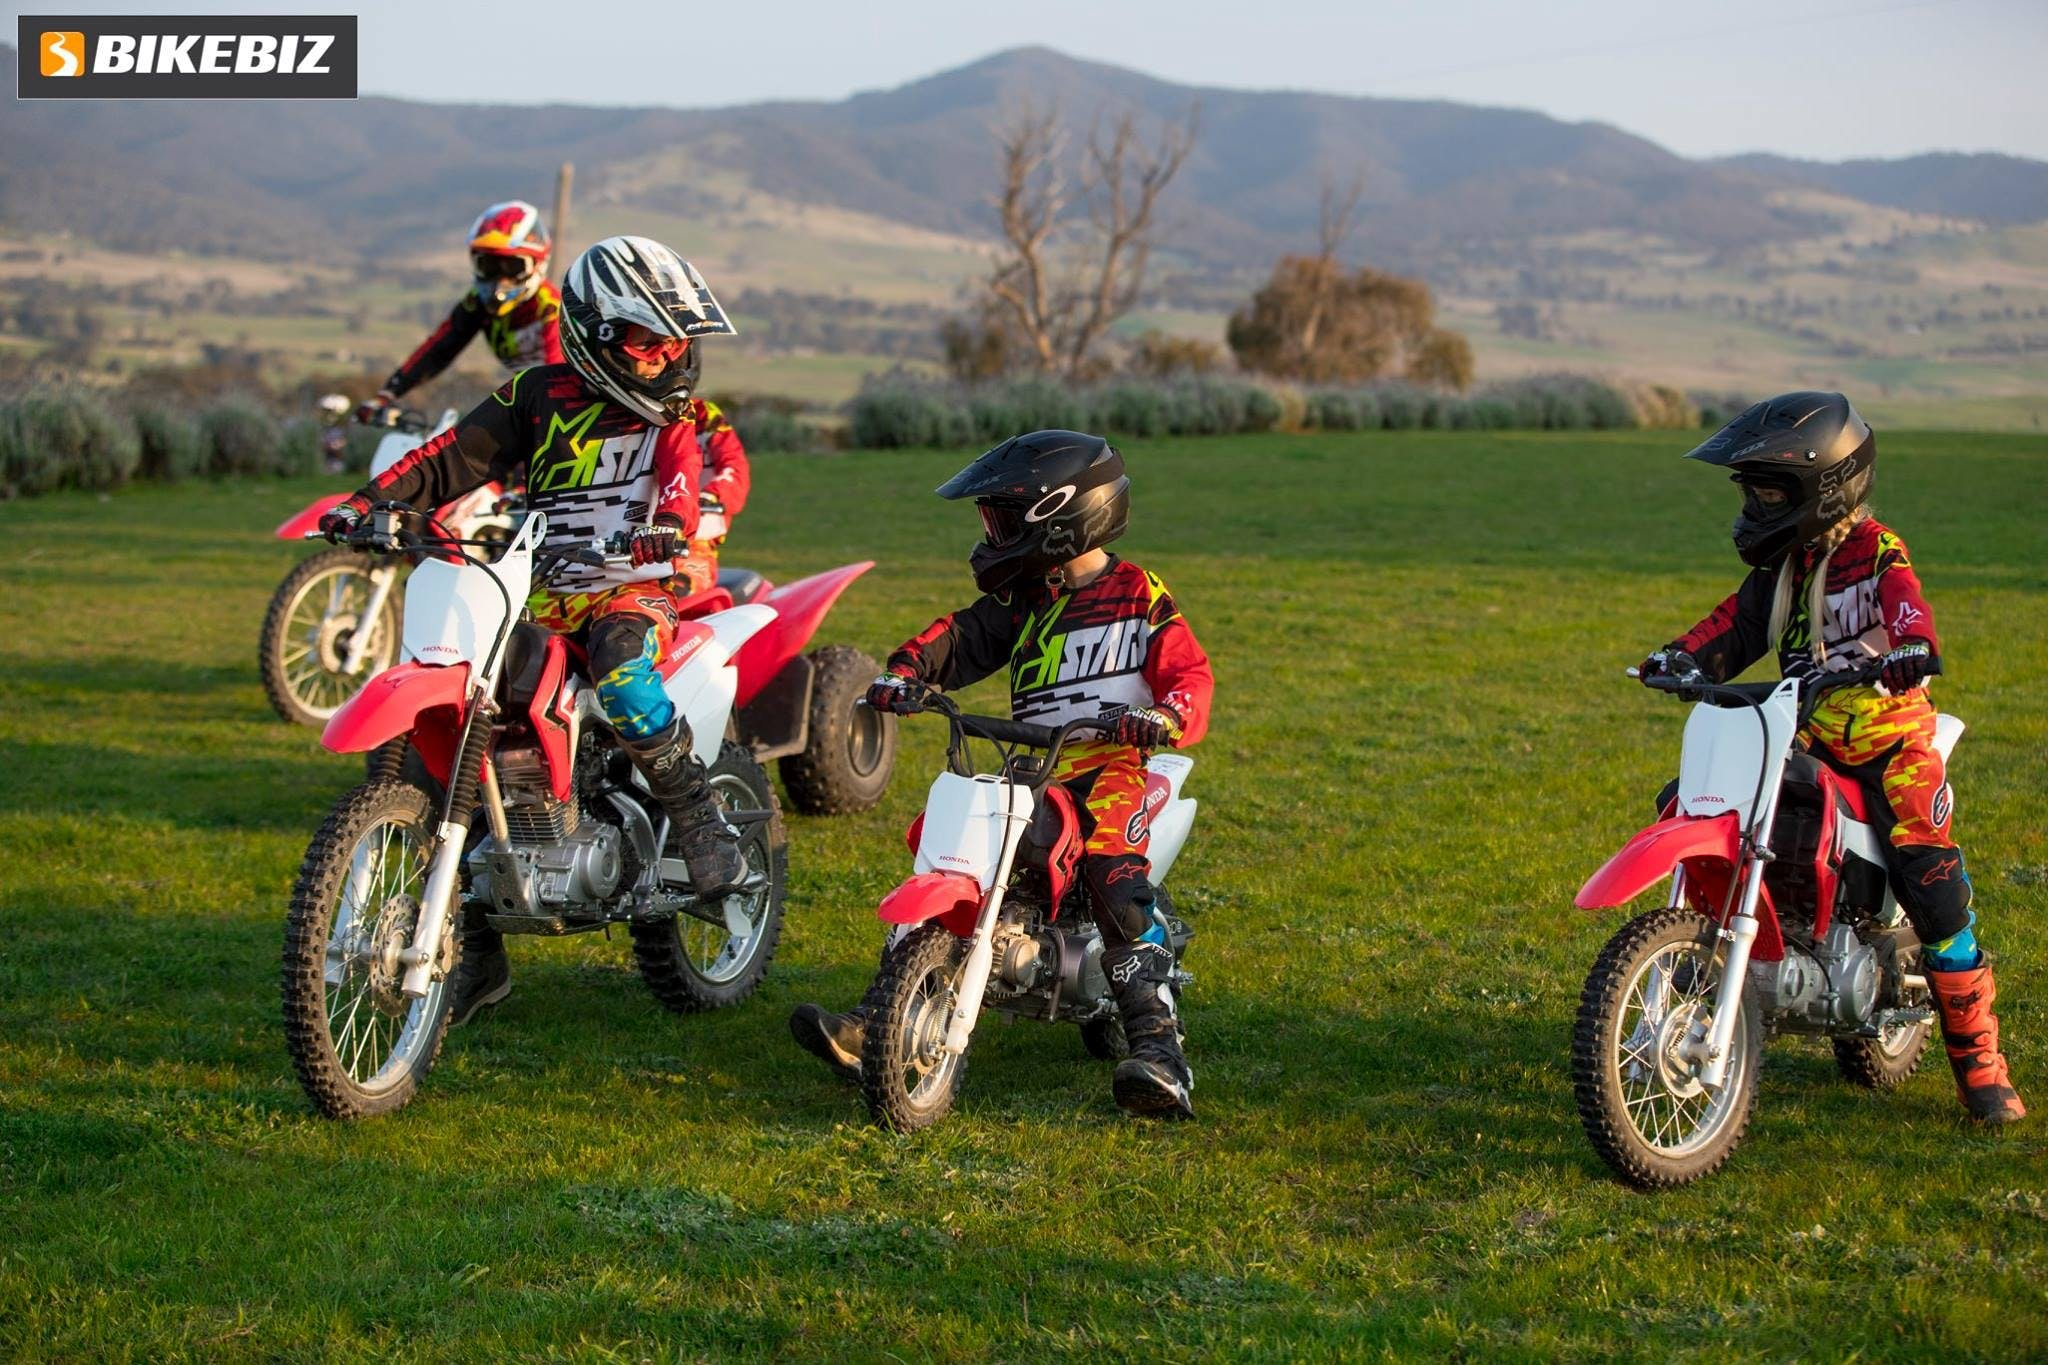 2 kids and 2 adults in motocross gear on red Honda dirt bikes